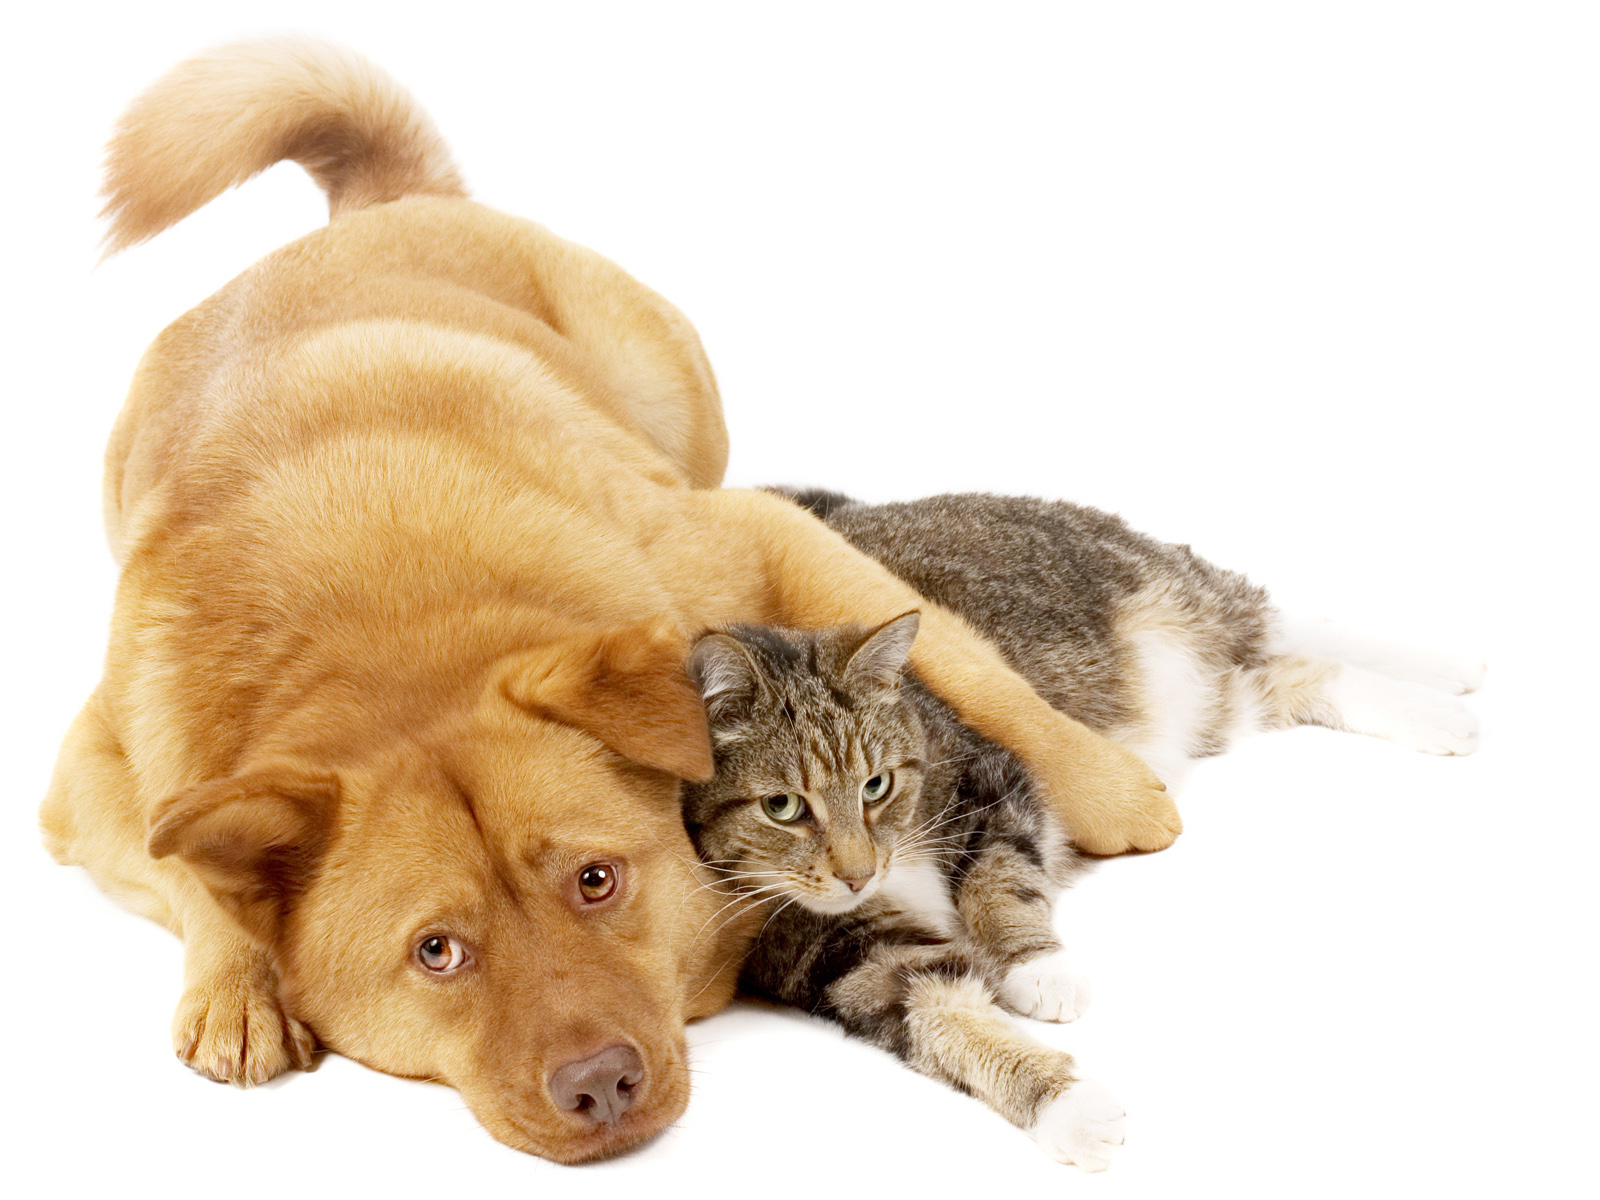 Dog And Cat On White Background computer desktop wallpaper 1600x1200